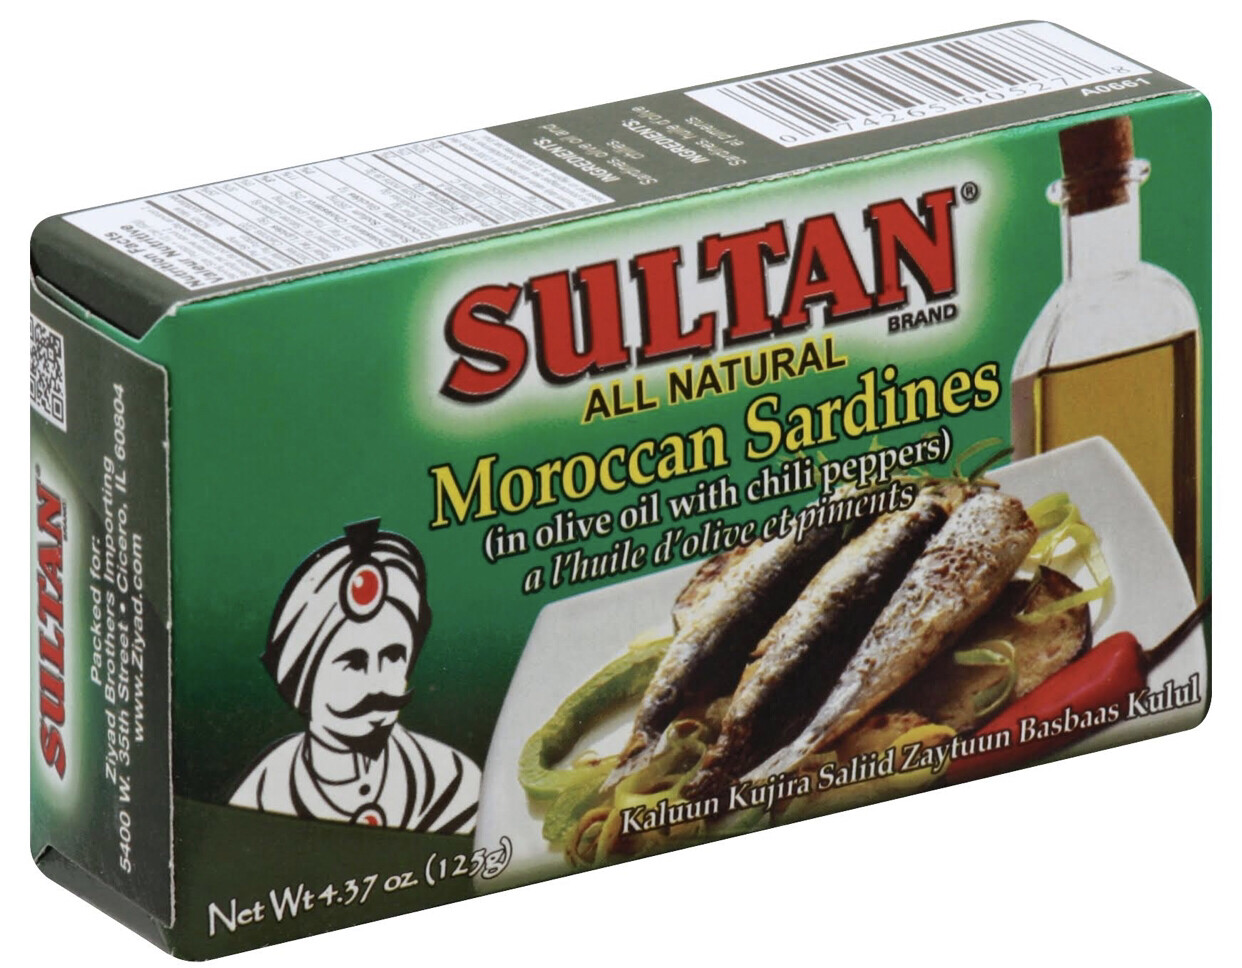 Sultan sardines in olive oil with chili peppers 4.37oz